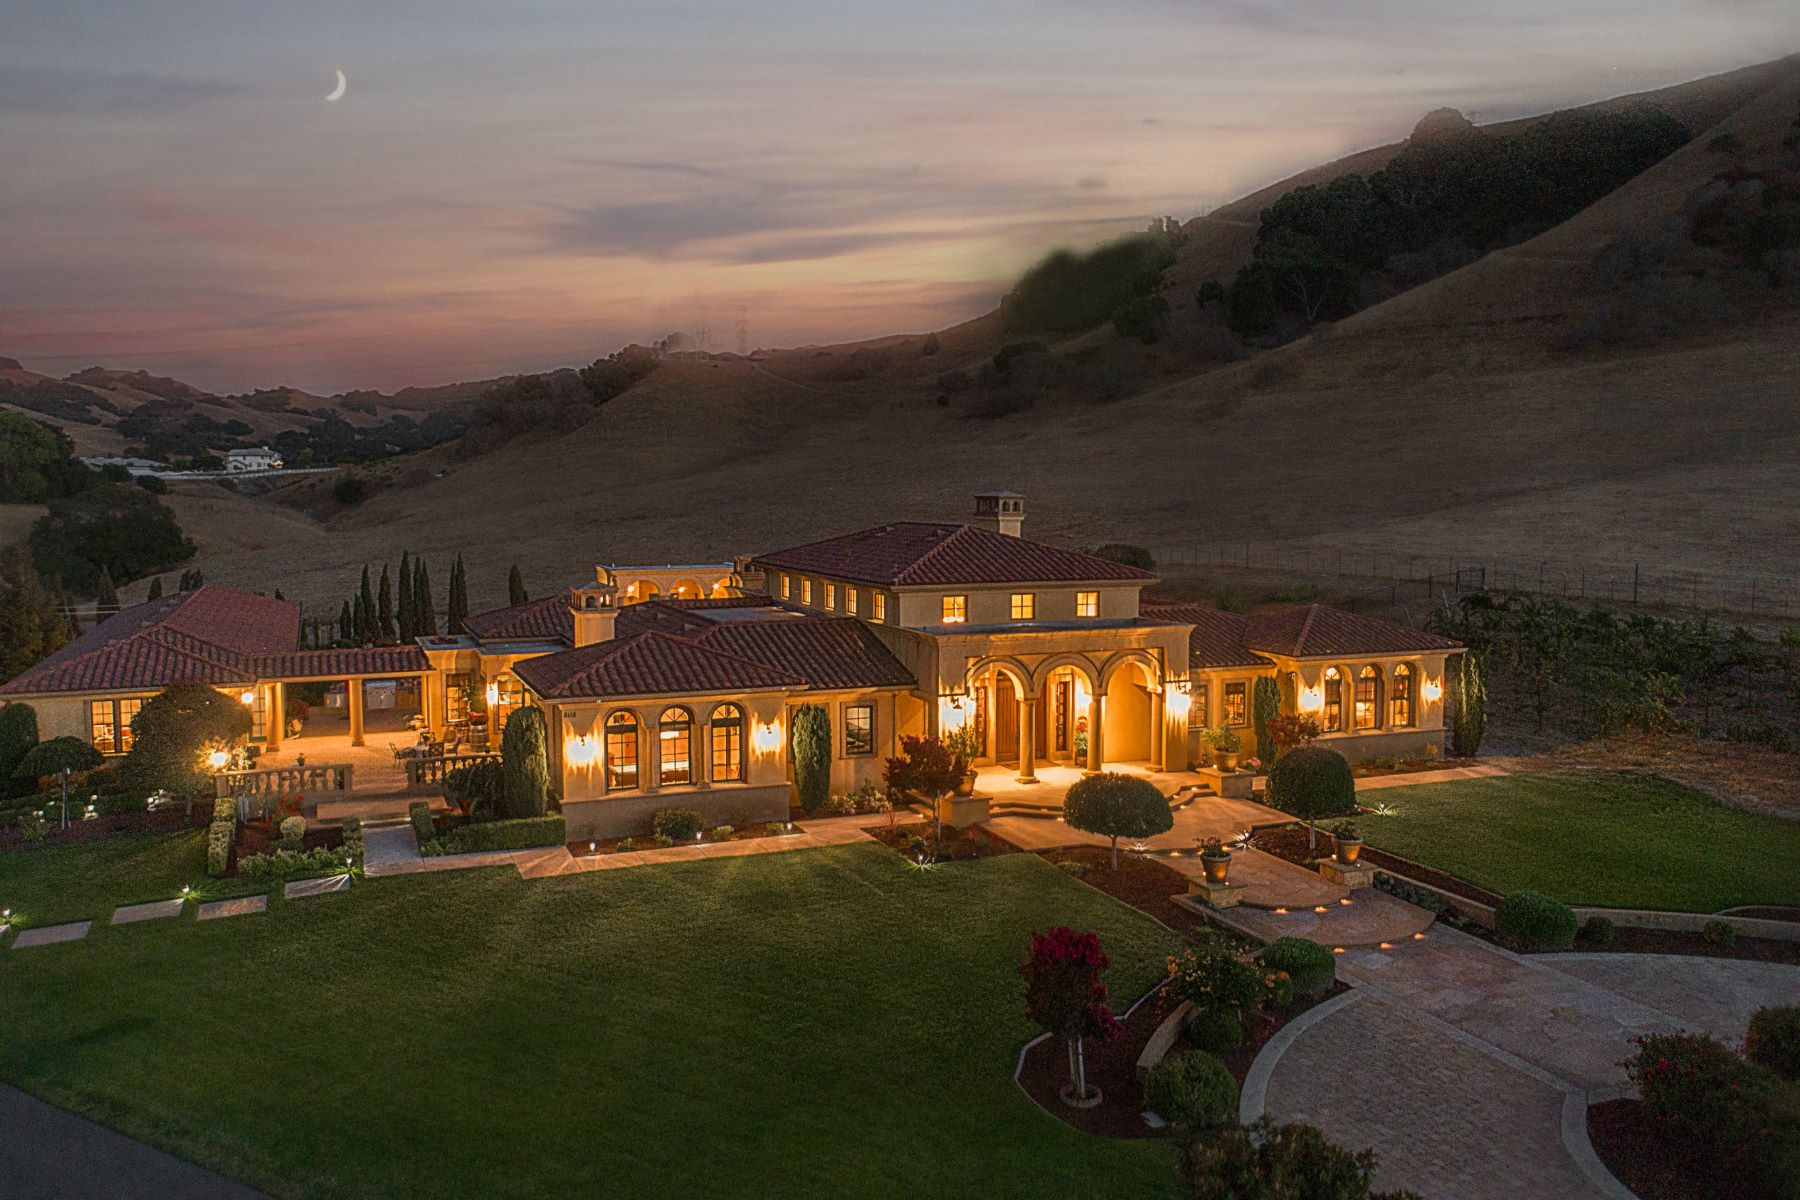 Single Family Home for Sale at Stunning Tuscan Vineyard Estate on 96 acres 5115 Sheridan Road Sunol, California 94586 United States